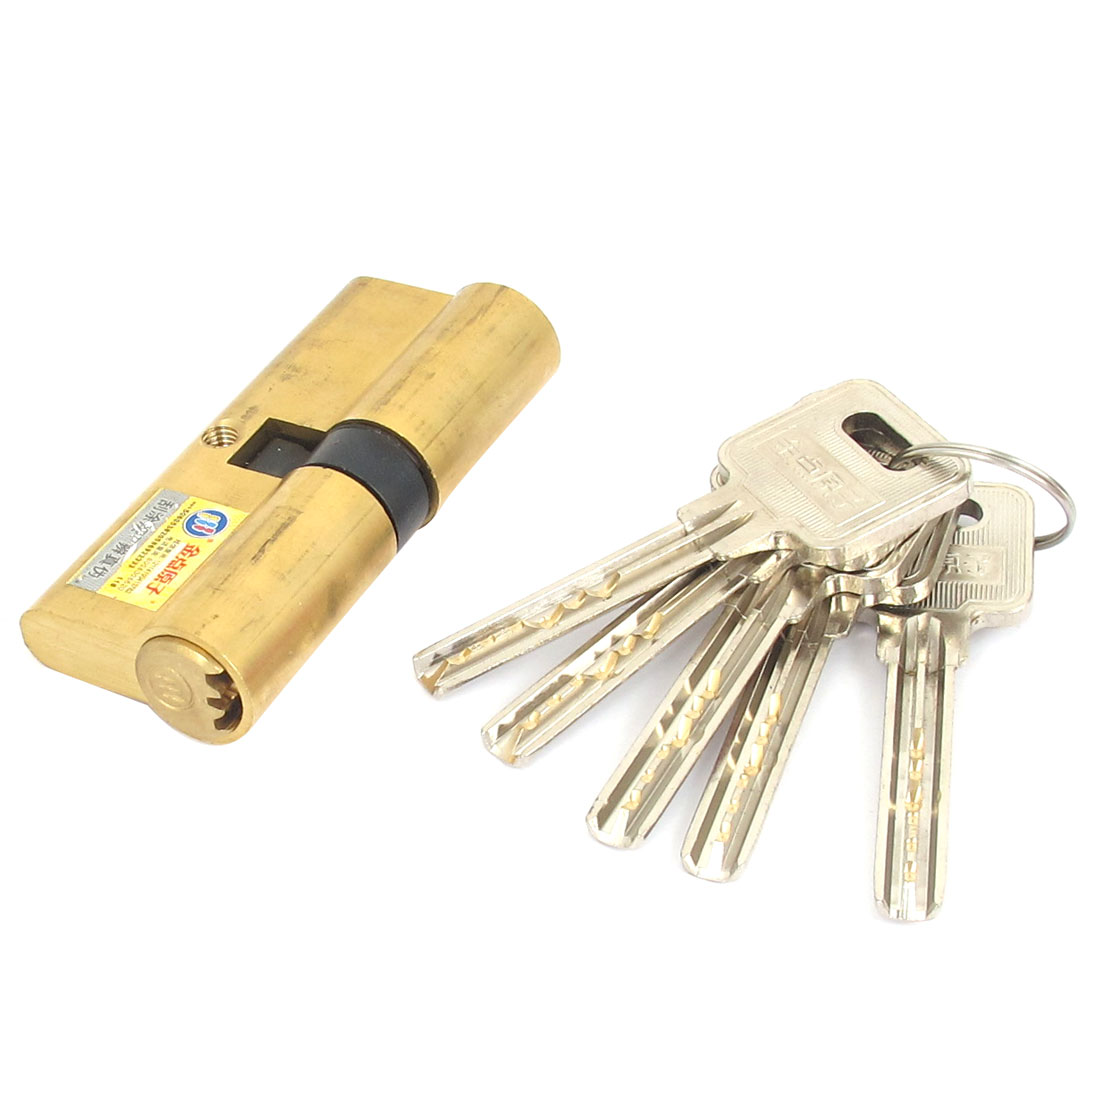 Home Office Metal Anti-theft Safety Security Door Lock Core Gold Tone w 5 Keys